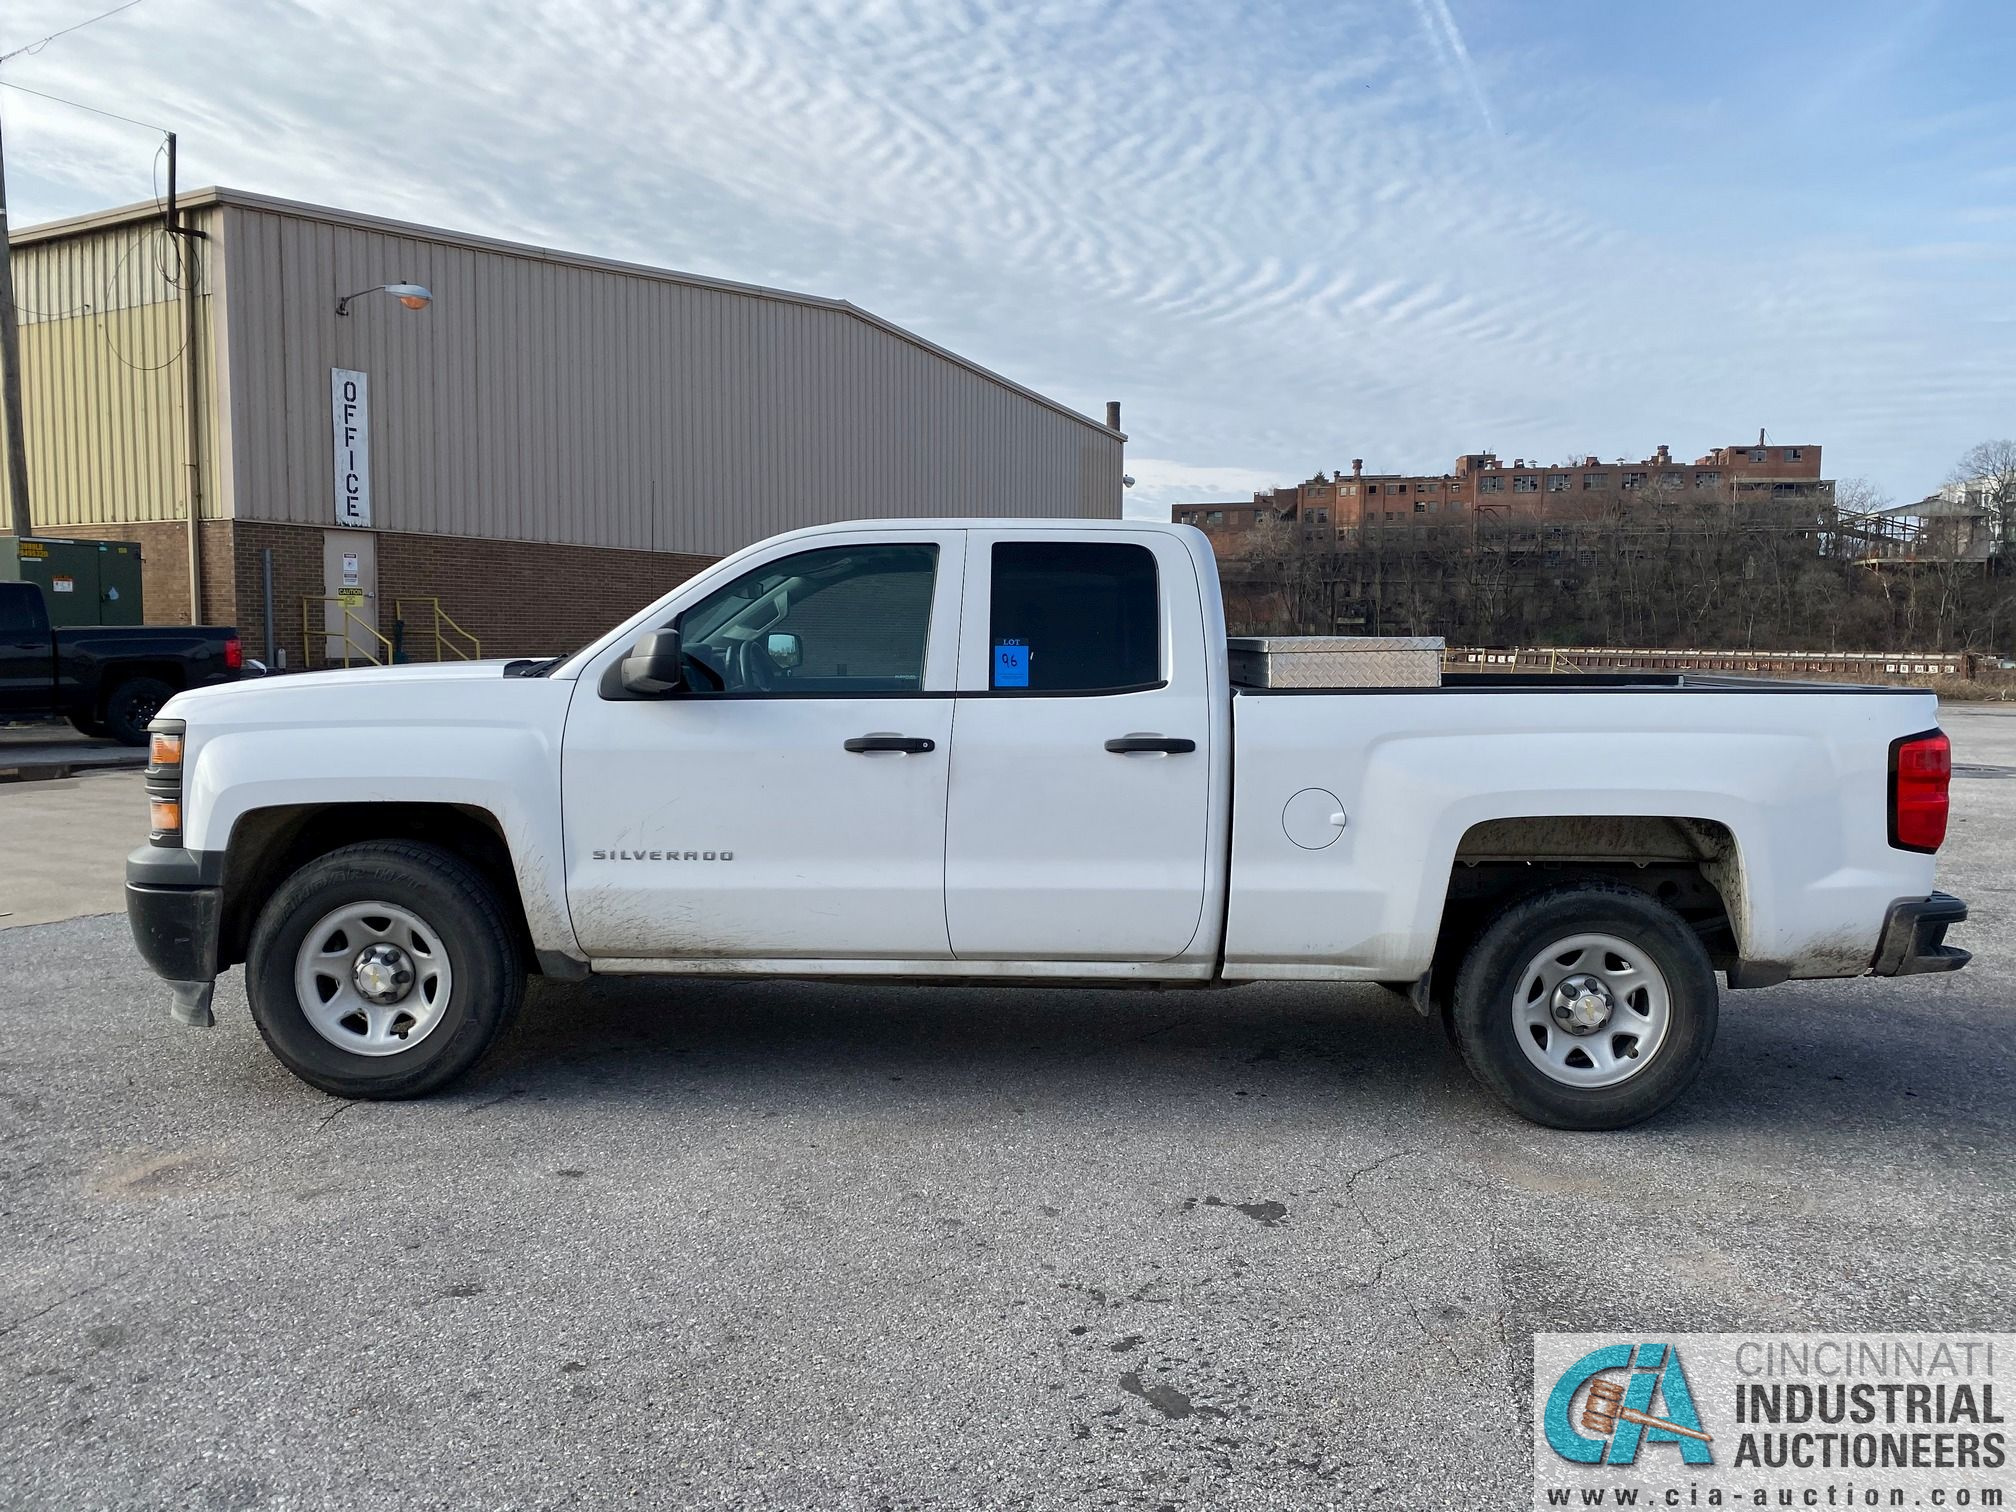 2014 CHEVROLET SILVERADO 1500 PICK UP TRUCK; VIN# 1GCRCPEH1EZ239274, 67,252 MILES SHOWING, 4.3 L, - Image 5 of 13